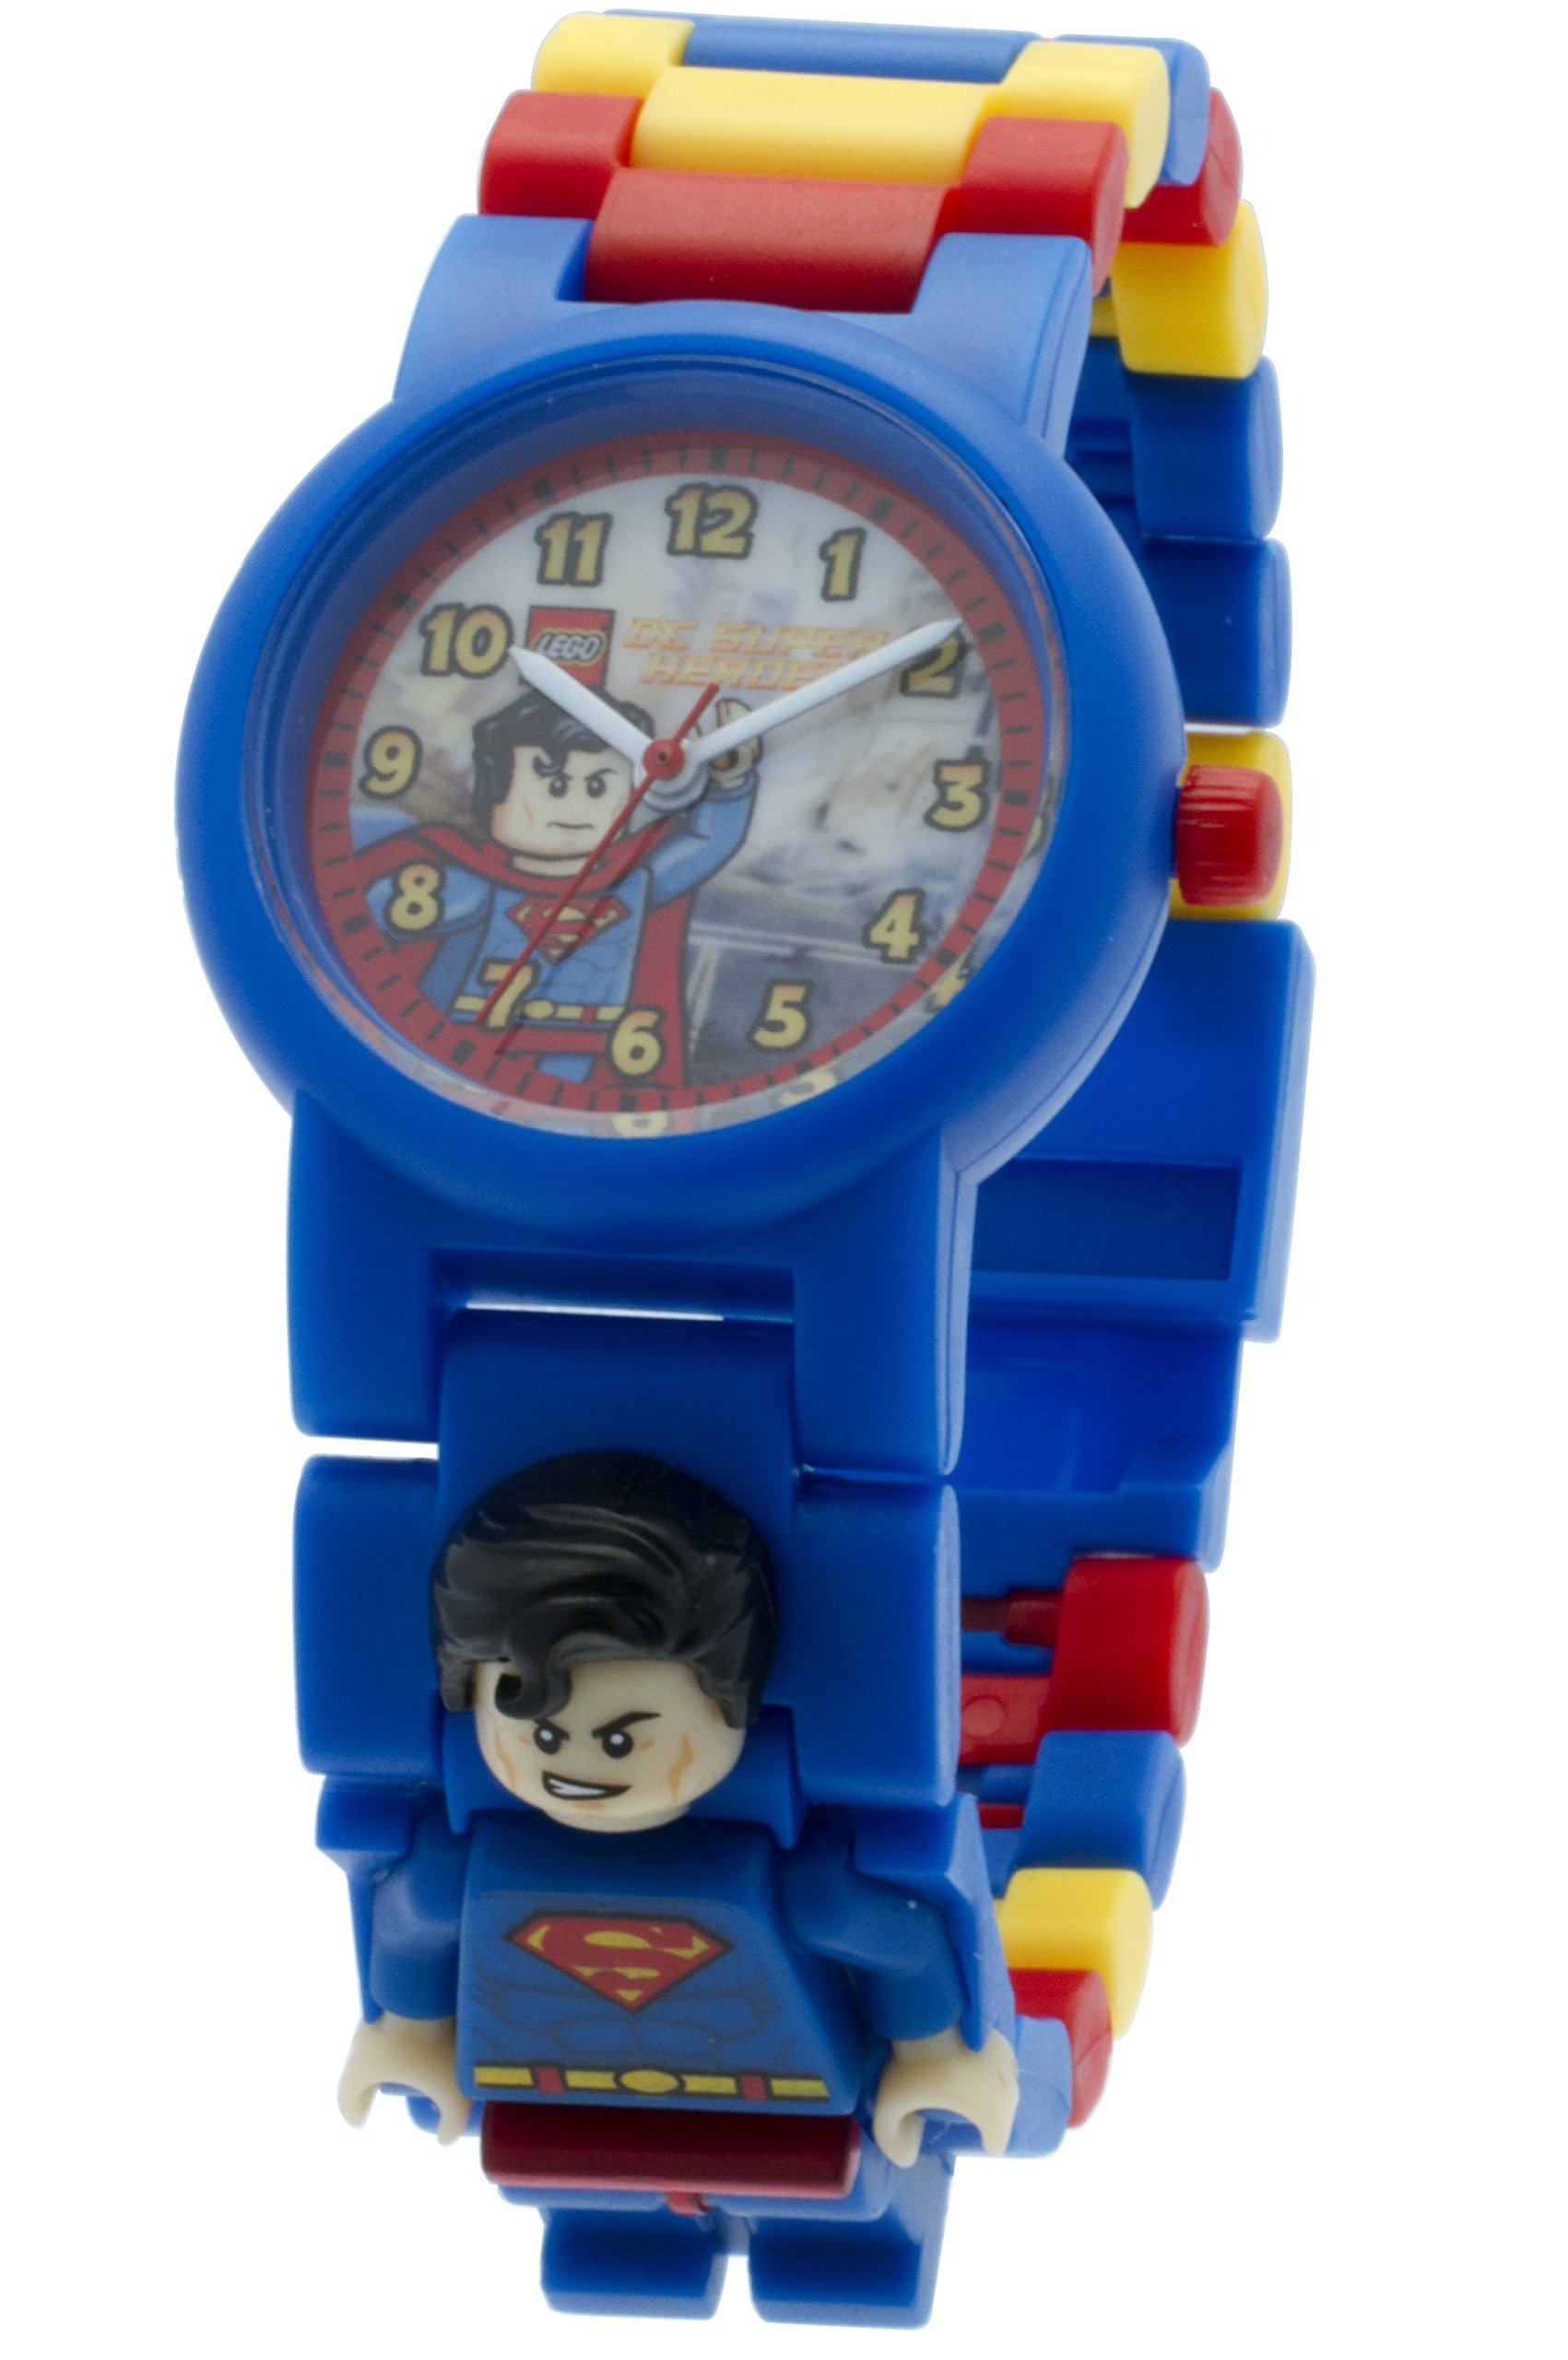 LEGO DC Comics 8020257 Super Heroes Superman Kids Minifigure Link Buildable Watch | blue/red | plastic | 25mm case diameter| analog quartz | boy girl | official